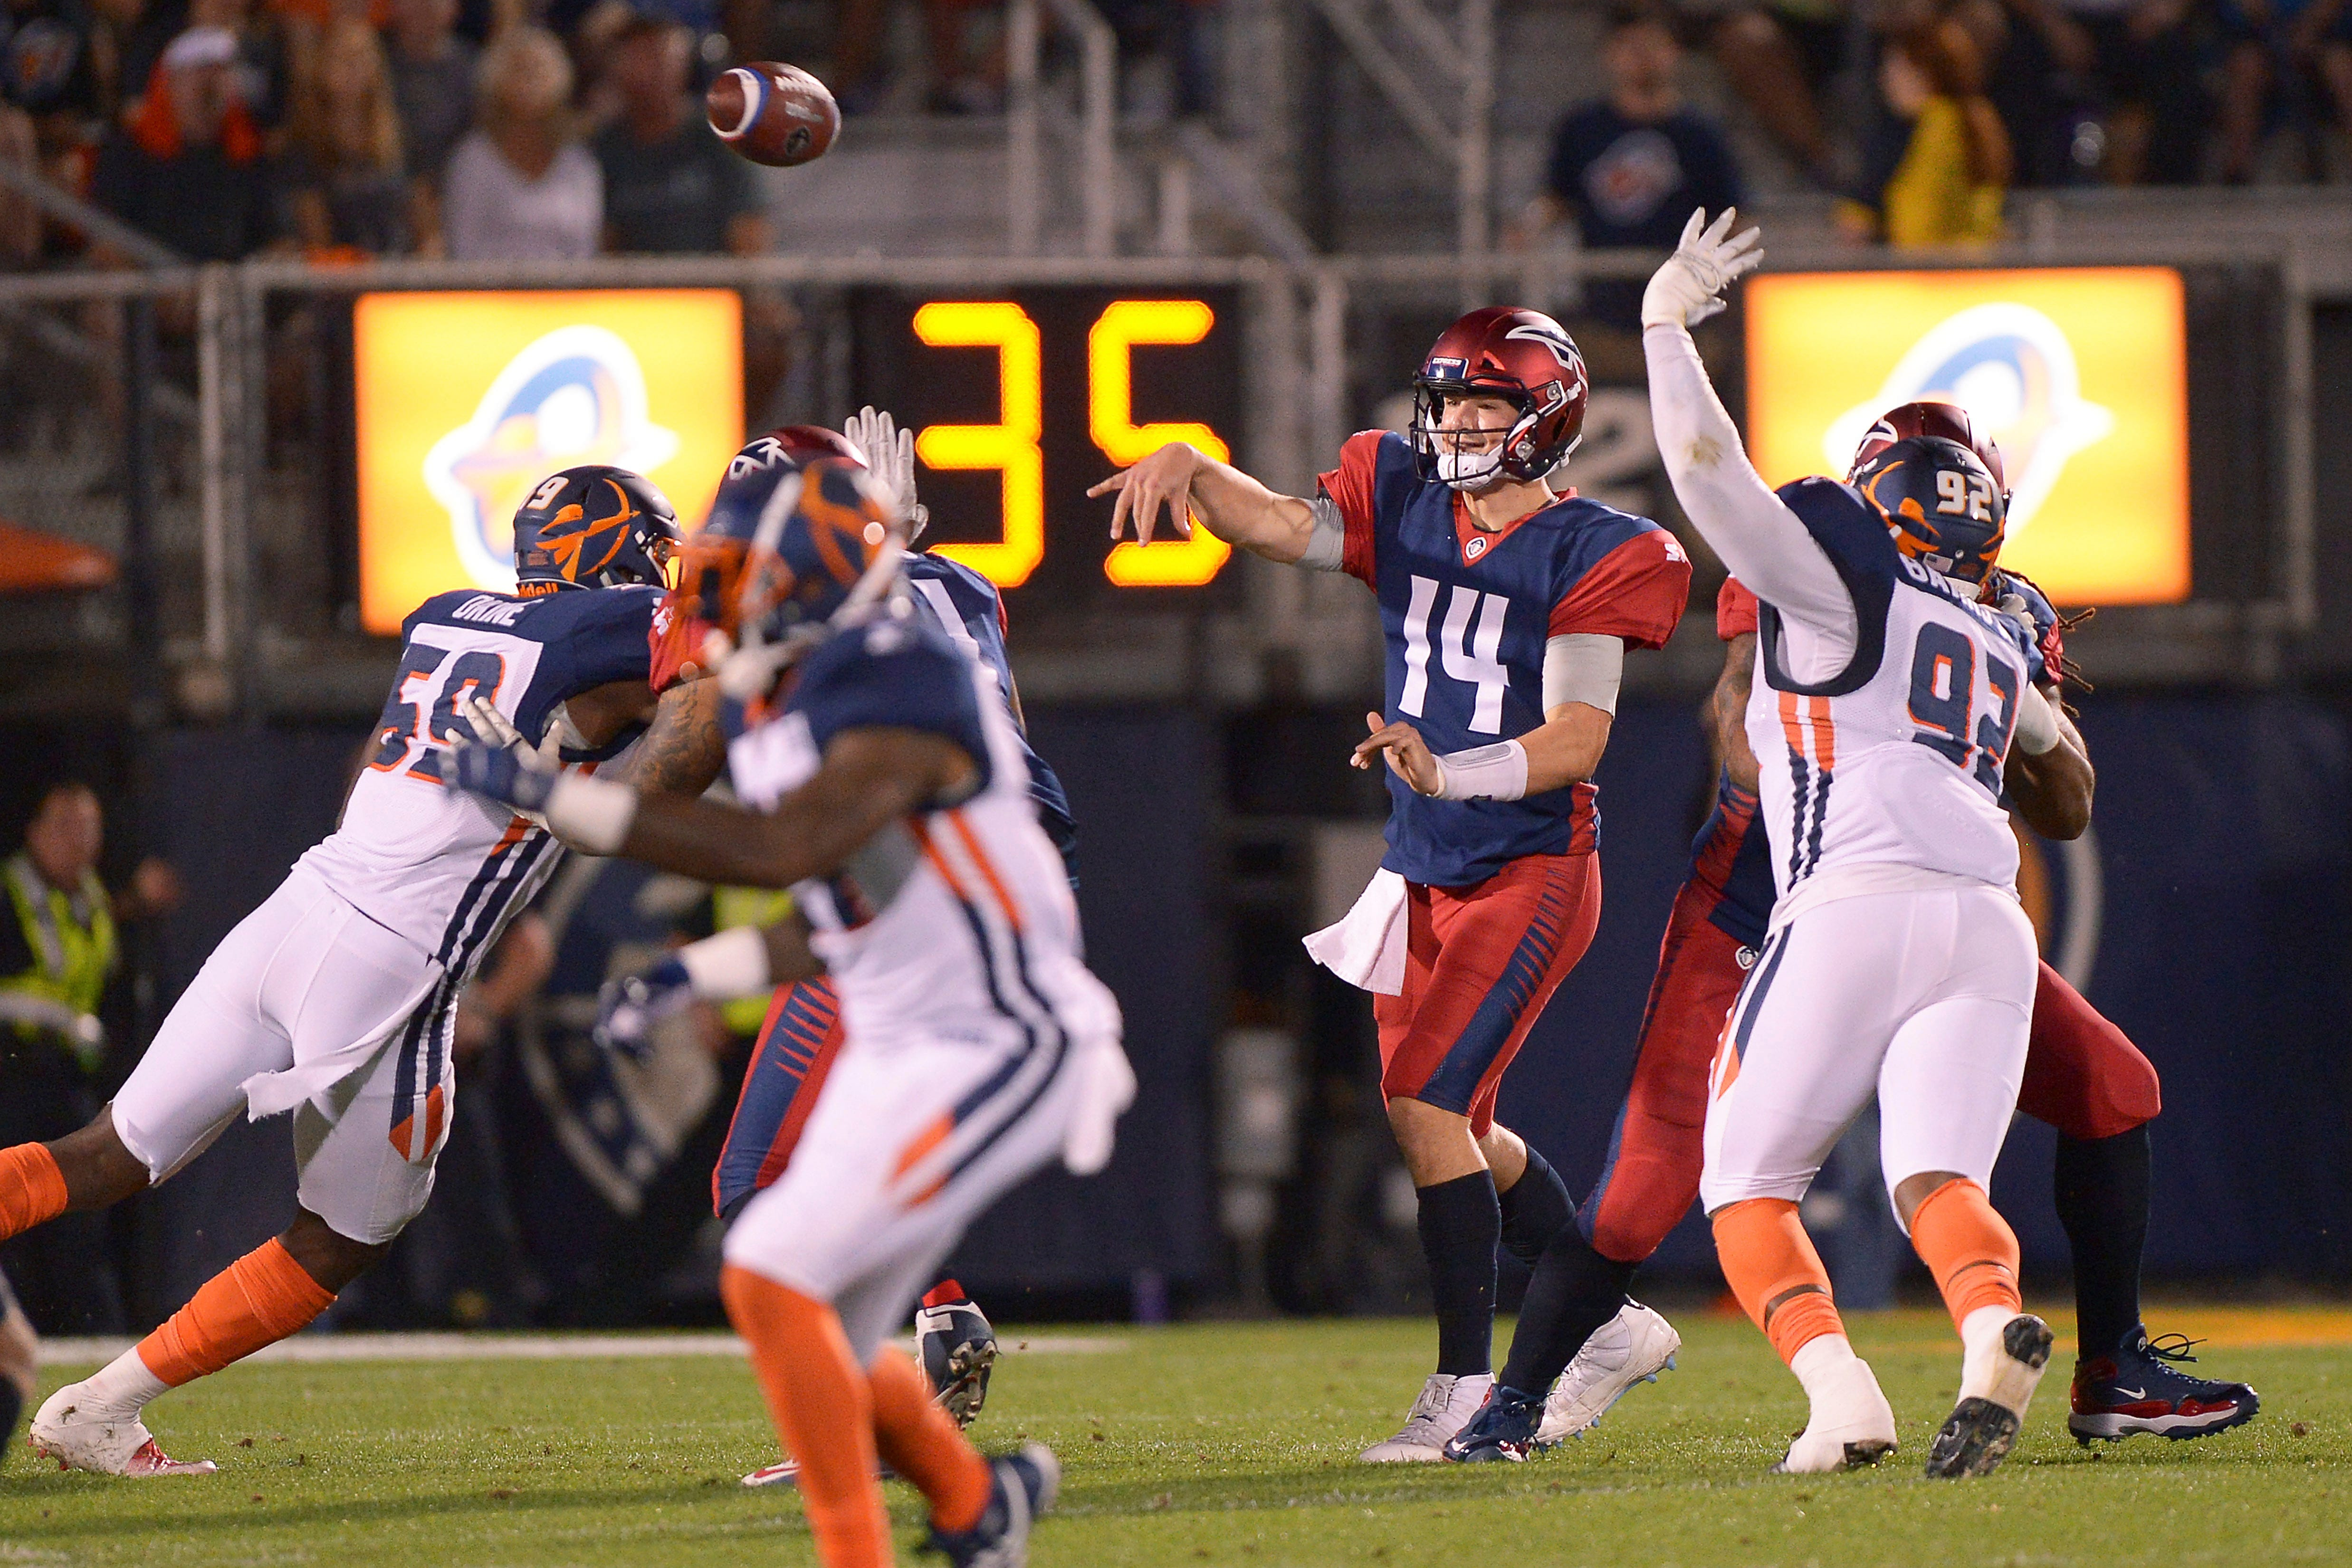 AAF: Christian Hackenberg benched in Memphis Express game